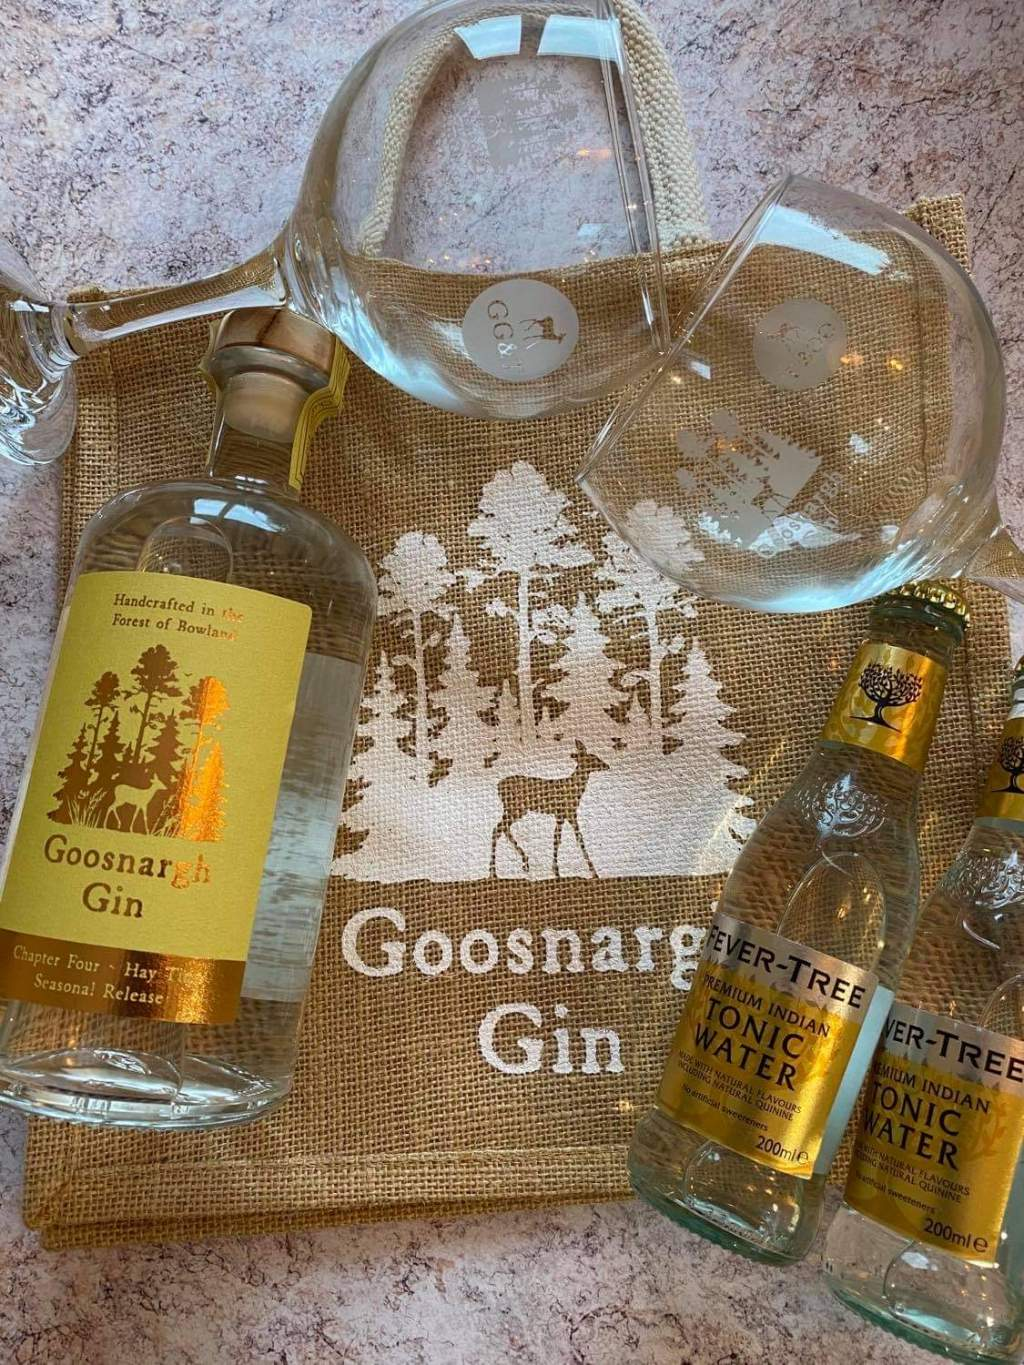 6-7pm: Goosnargh Gin Chapter Four – Hay Time gift pack